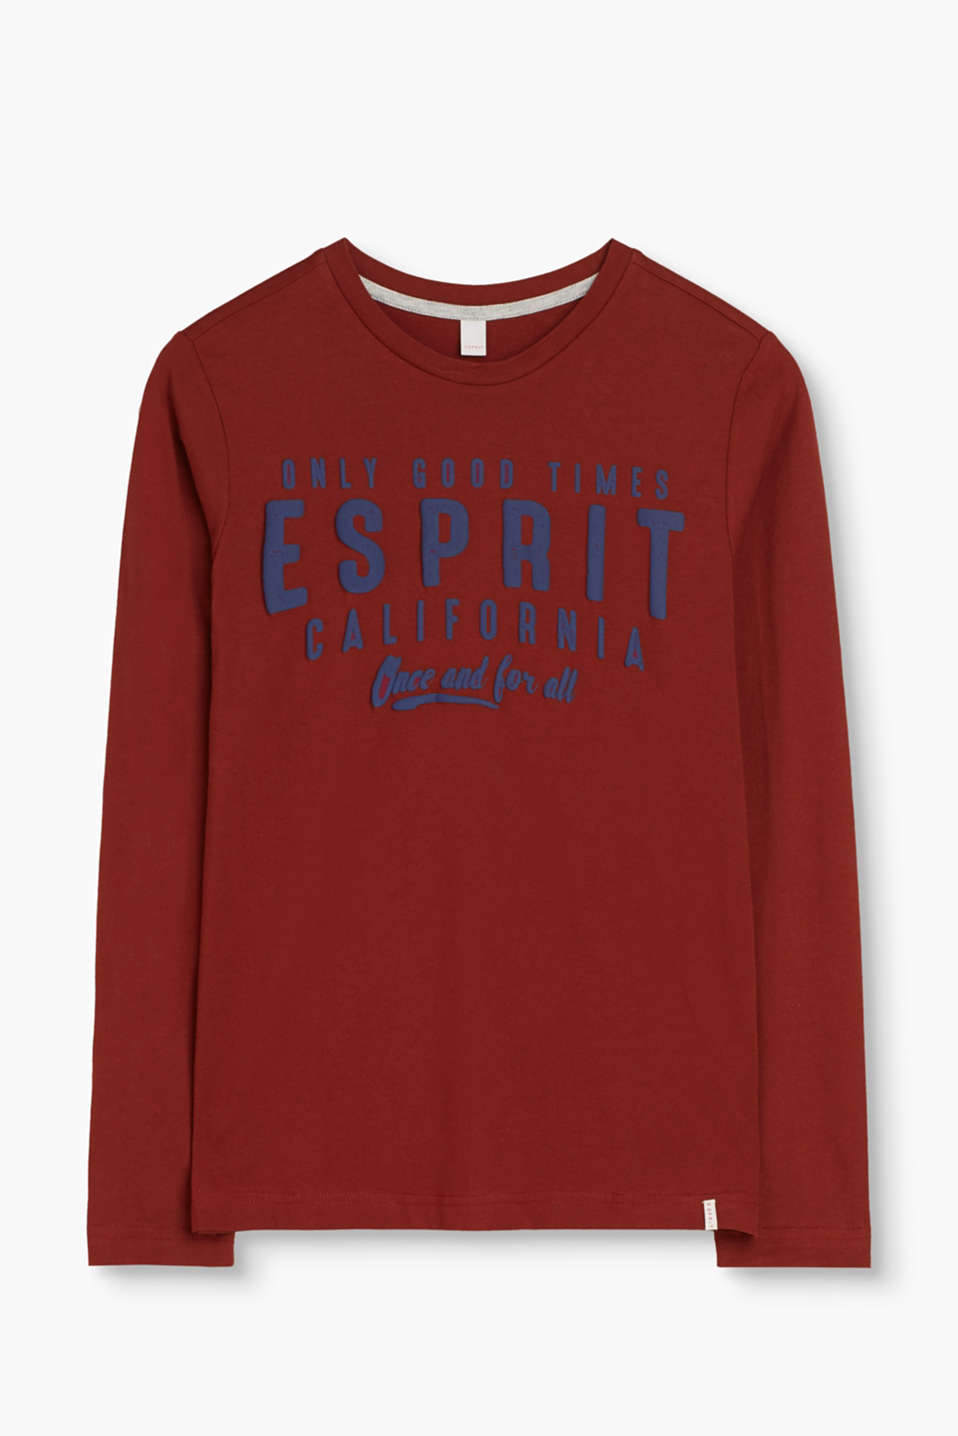 The perfect basic for lush, laid-back looks: cotton-jersey long sleeve top with a foam logo print